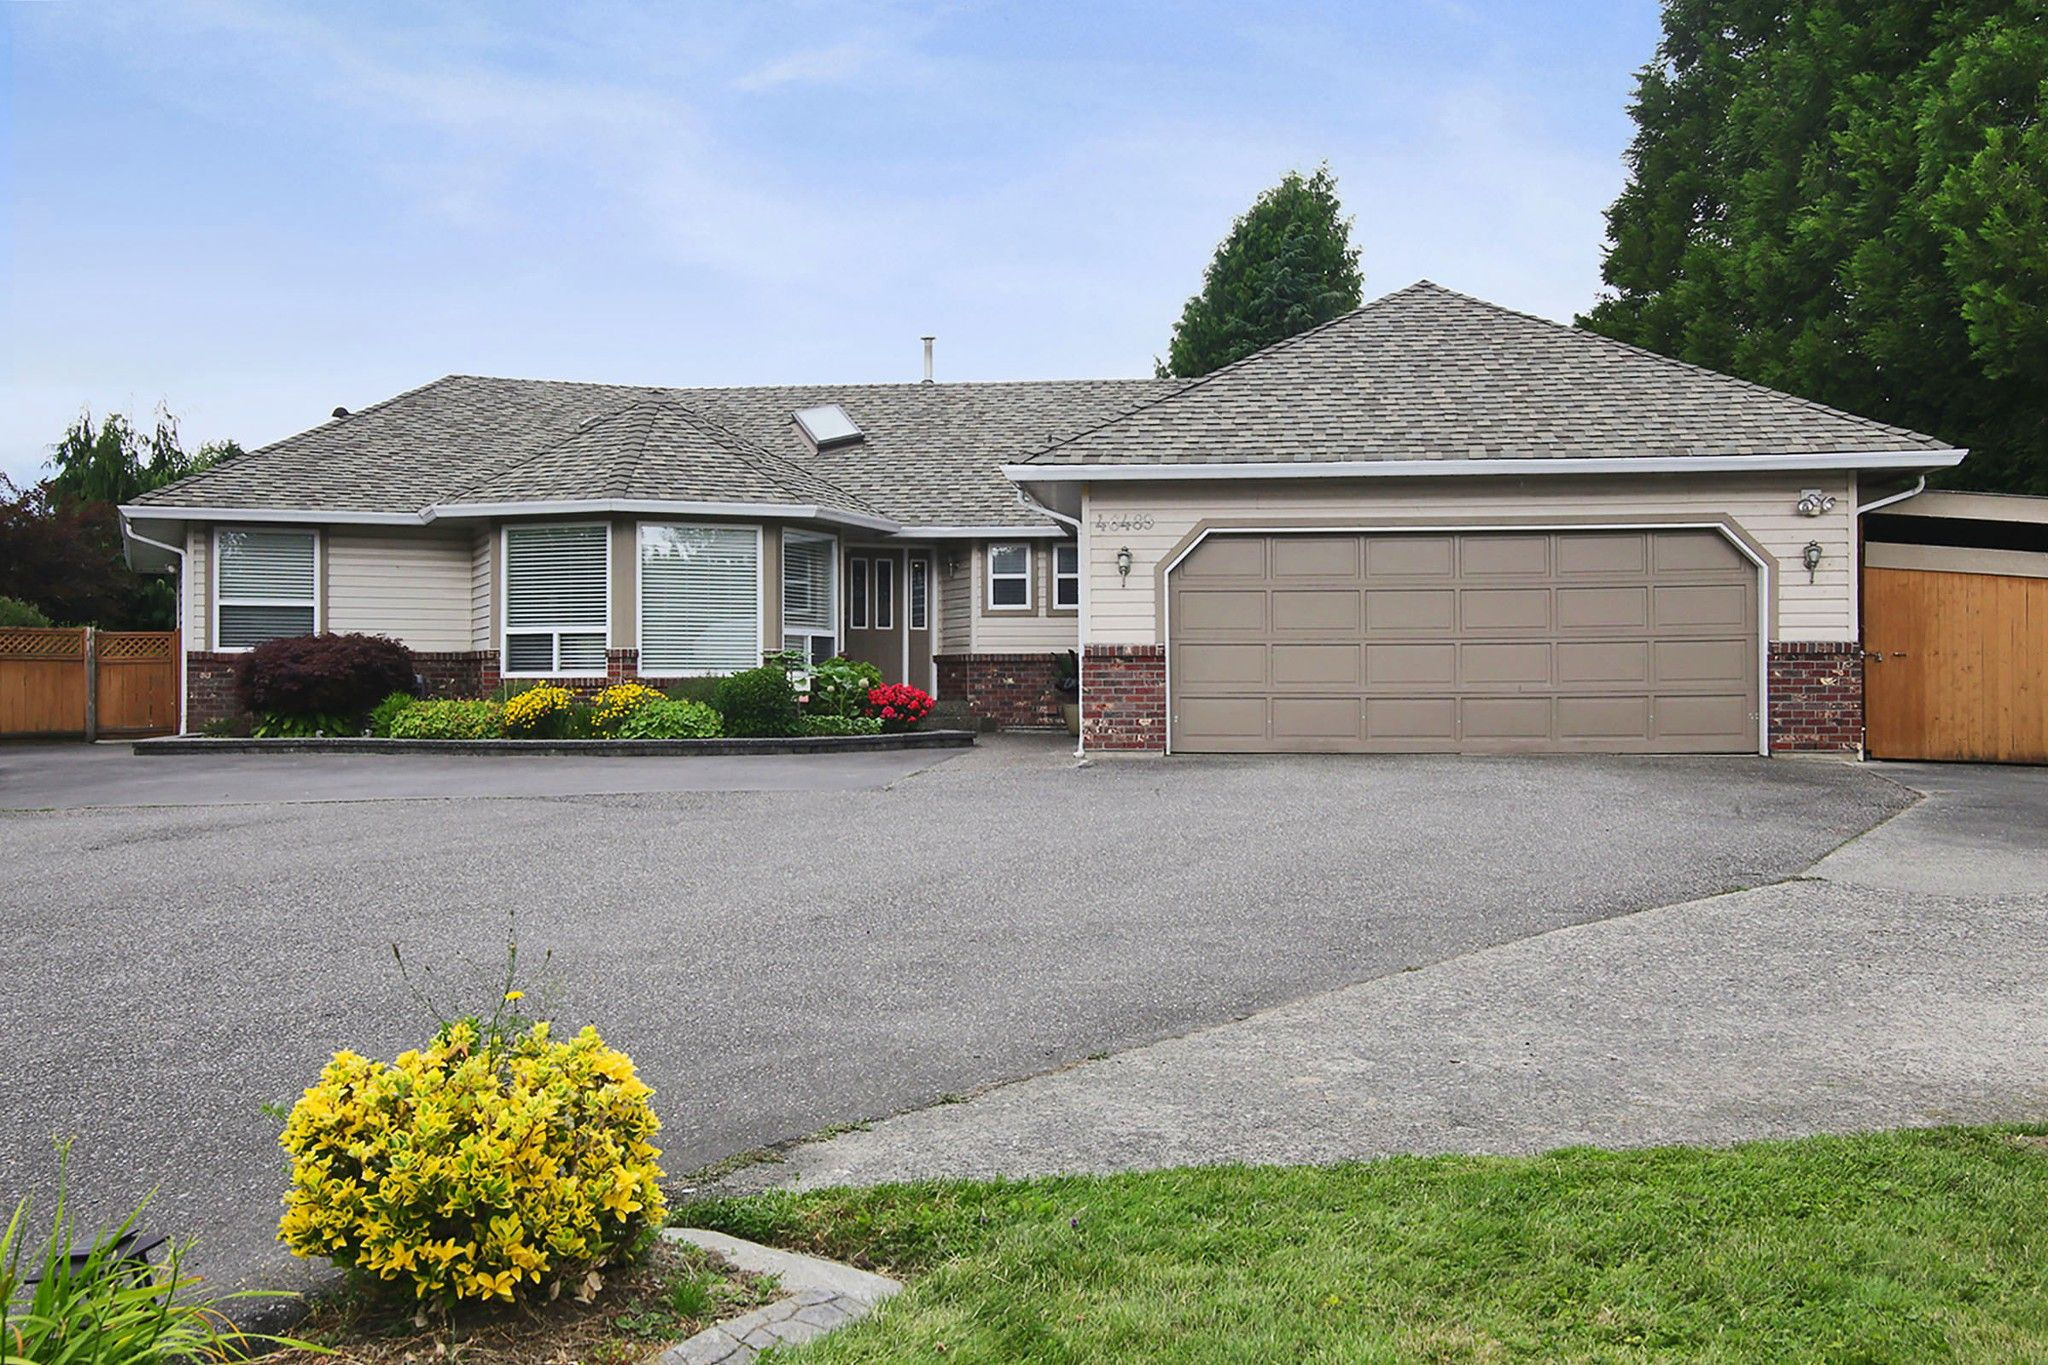 Main Photo: 46489 HOPE RIVER Road in Chilliwack: Fairfield Island House for sale : MLS®# R2404321